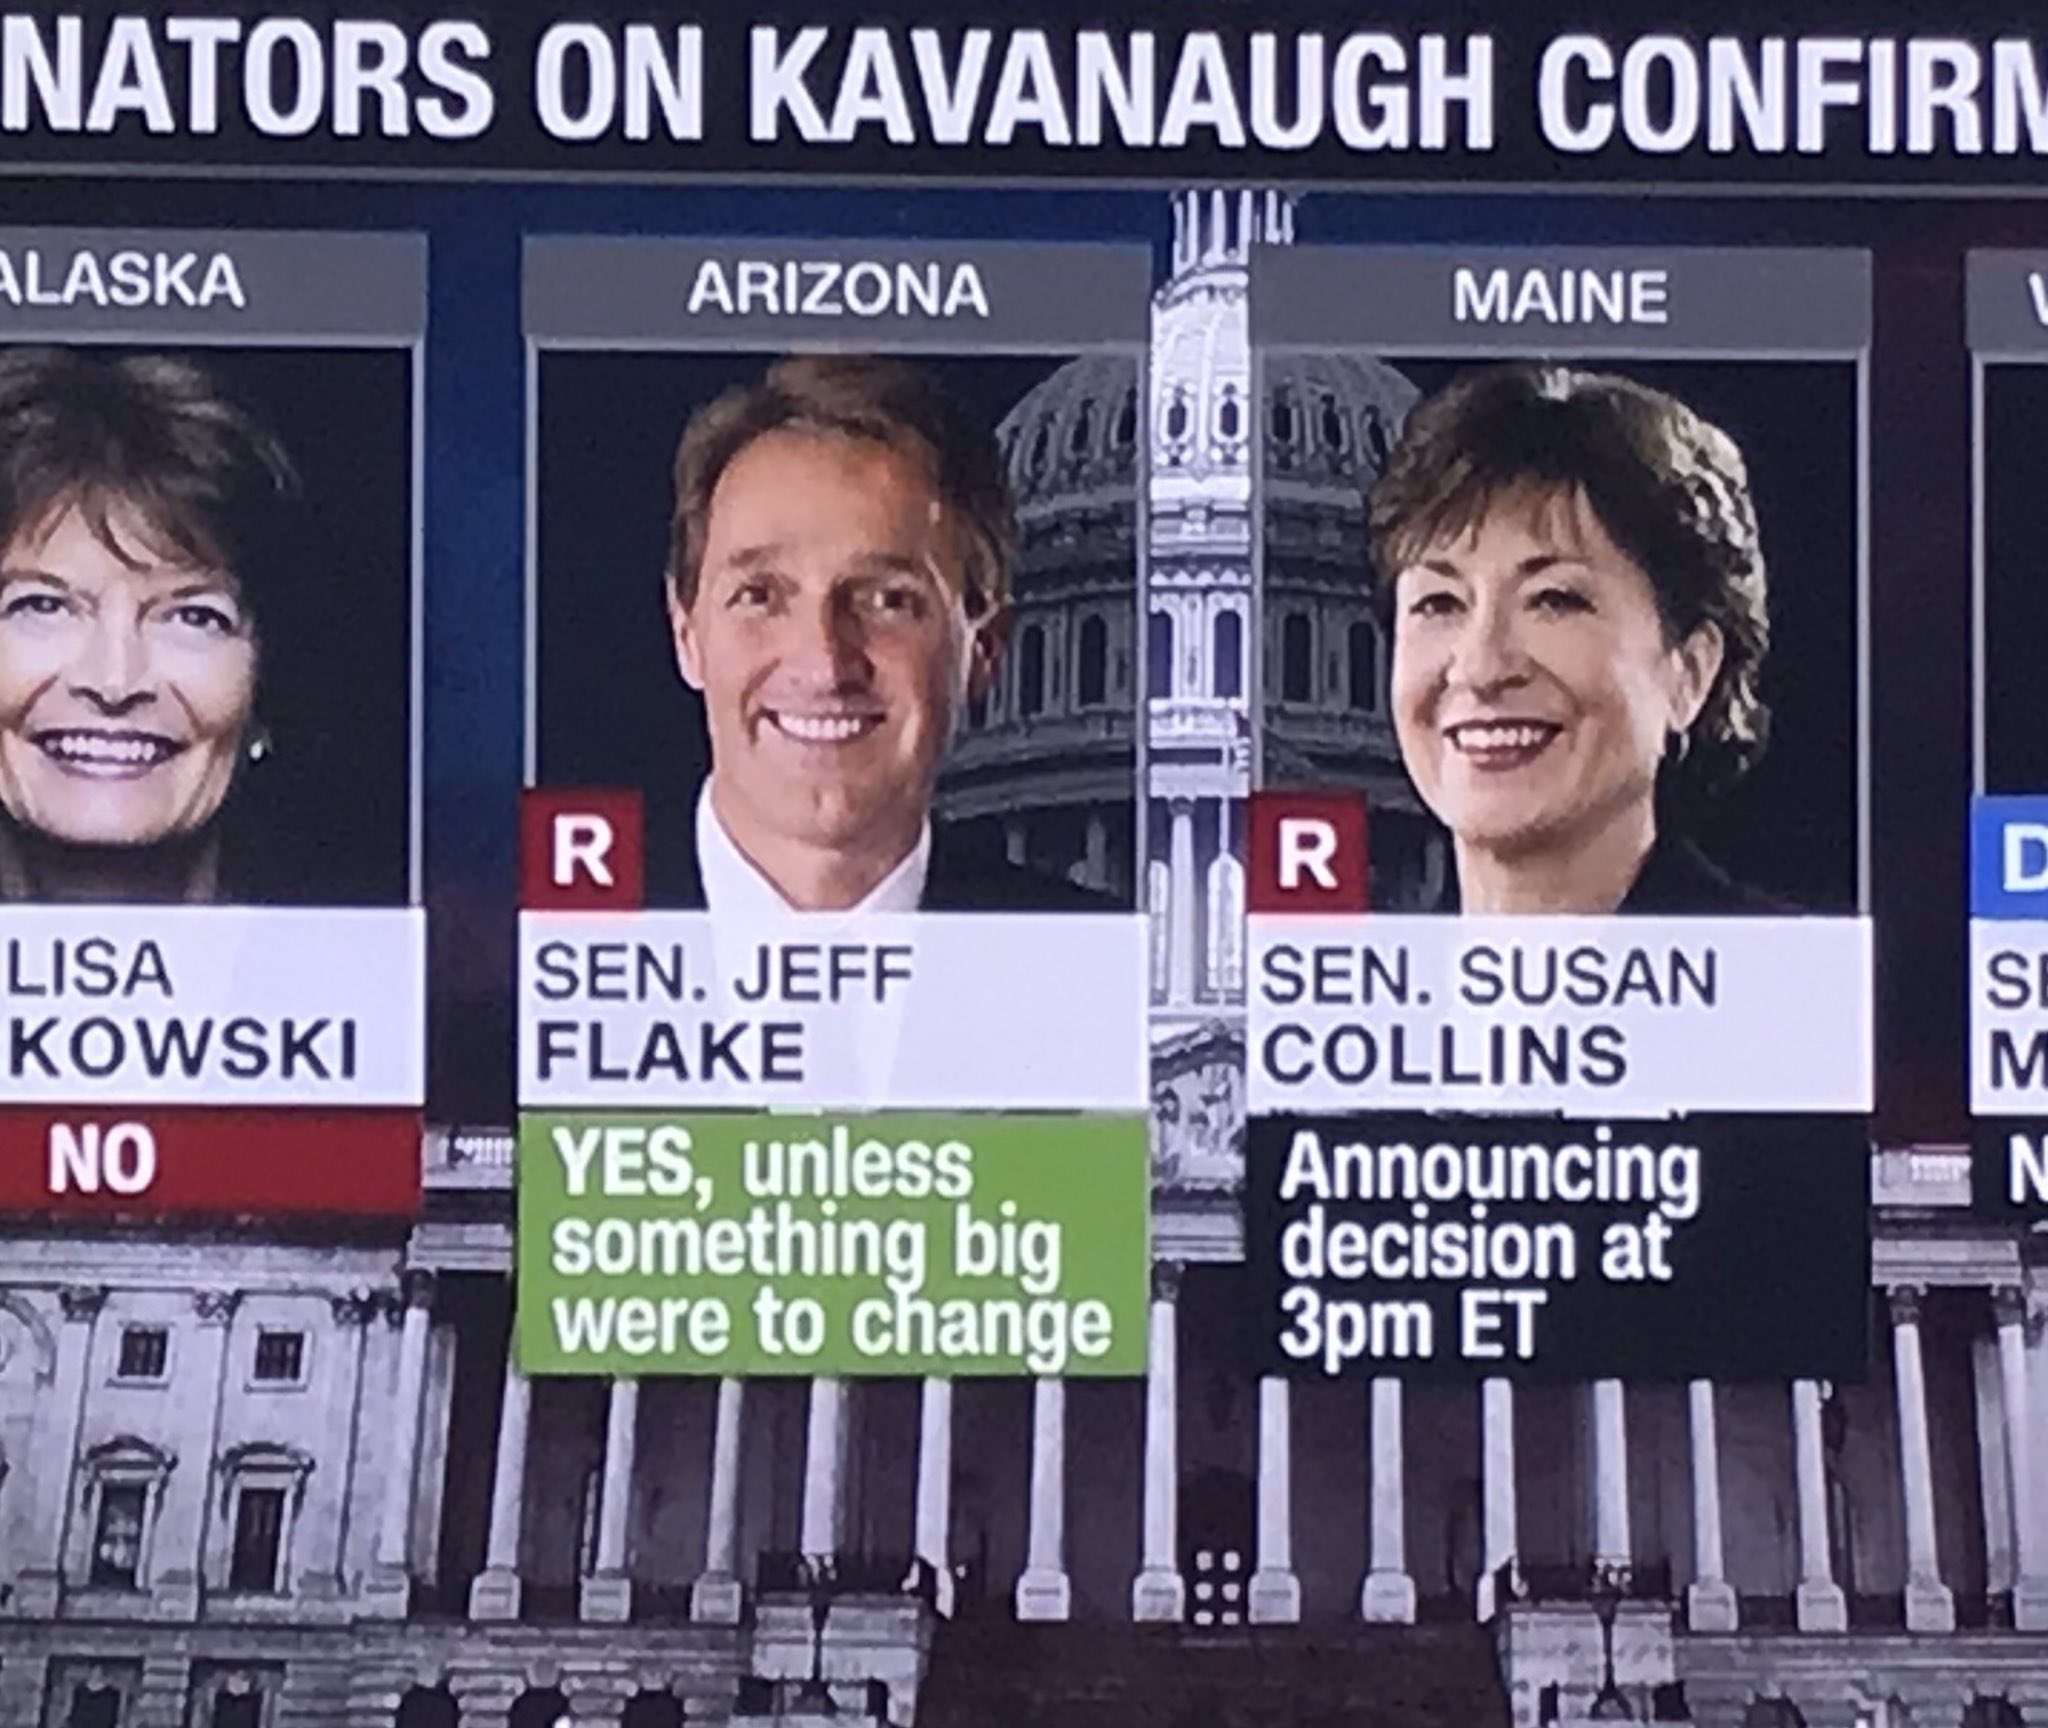 BREAKING: Jeff Flake open to being visited by three ghosts before making final decision https://t.co/KueM72Twdi